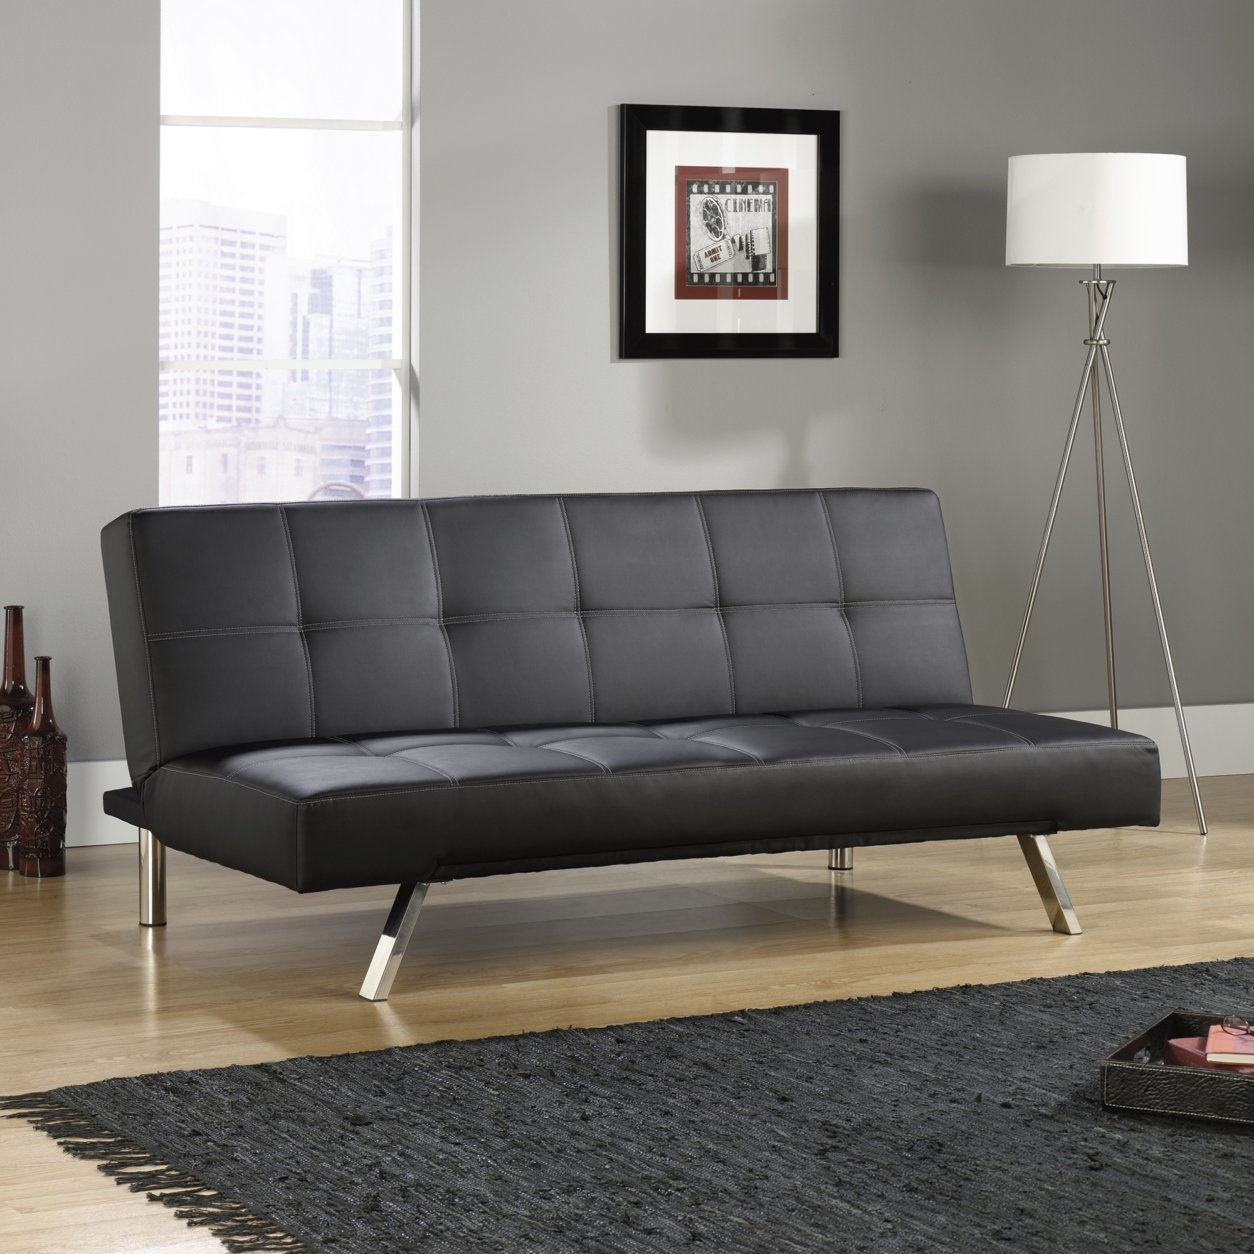 This undated photo shows Sauder's armless Cooper sofa, a good option for a tight space where you want furniture with a smaller footprint and room to get around. (Sauder via AP)